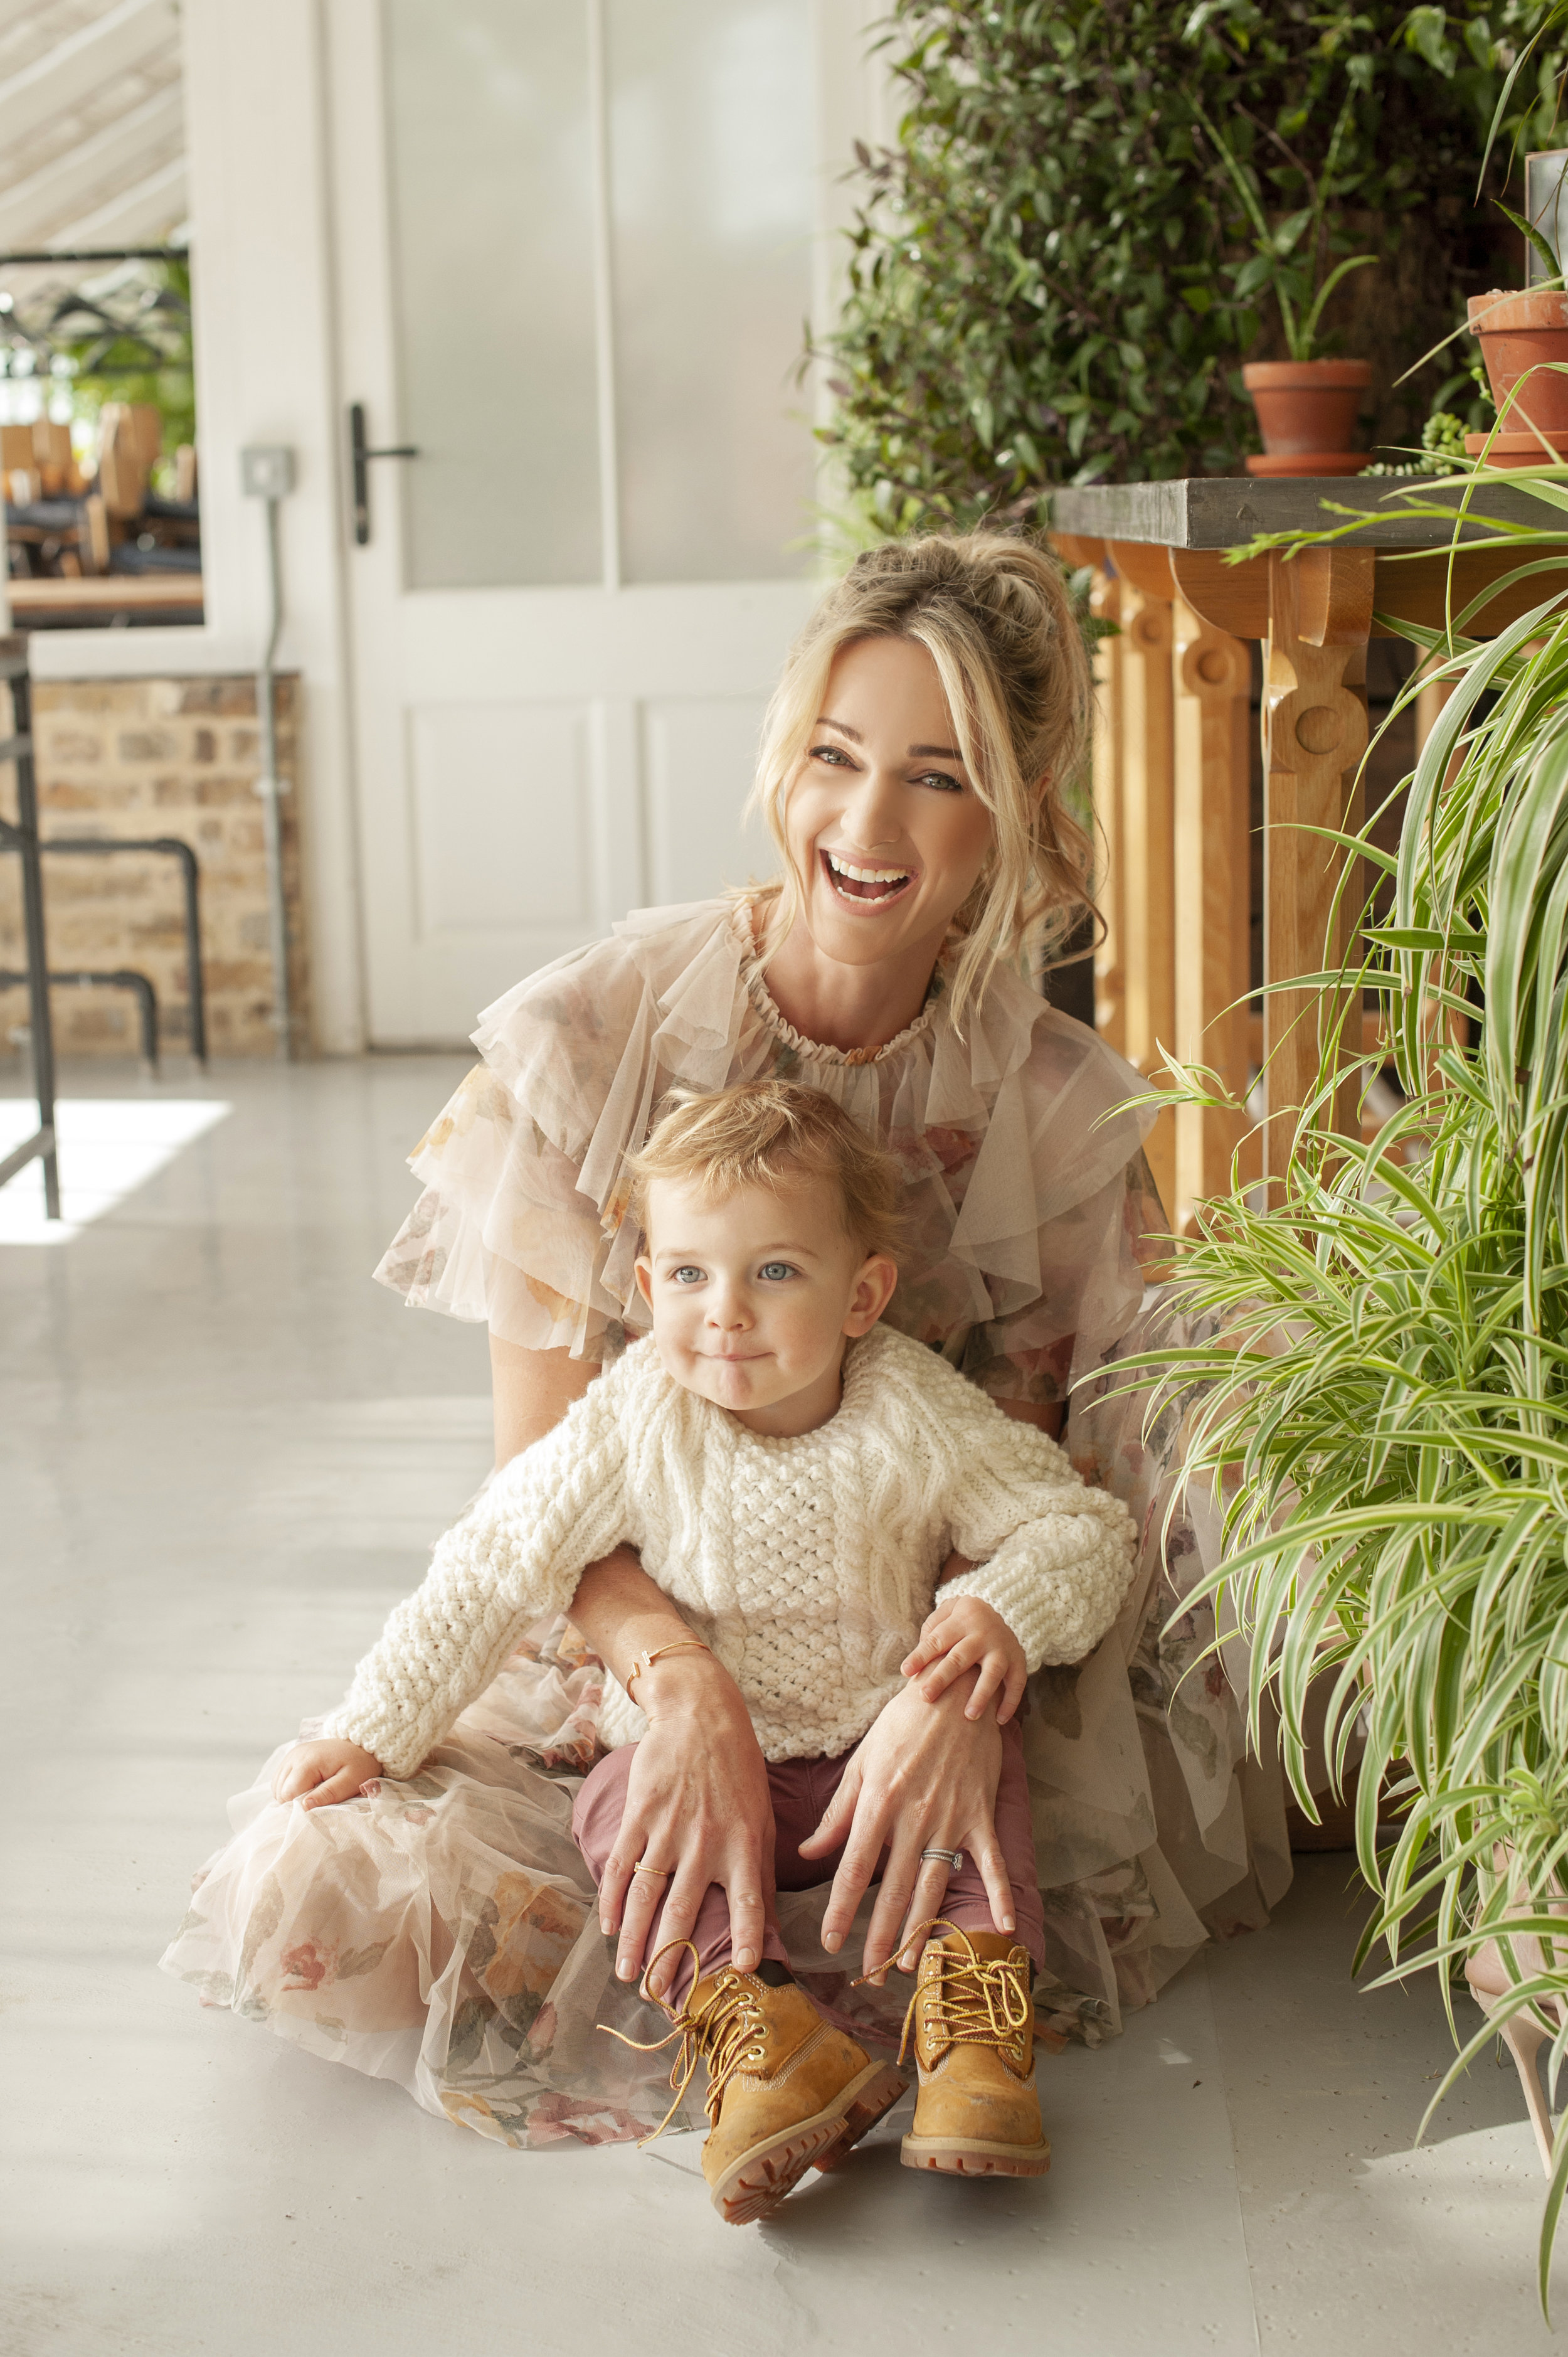 Storm and her adorable son Cooper   (Photo Credits: Lili Forberg, Styling Orla Diffily. Make up: Georgios Tsantirakis, Lancome, Hair Sarah O'Brien. Production : Jane Lundon for RSVP Magazine)  Storm's dress is by Needle & Thread at Brown Thomas Cork. Cooper's look is his own :}